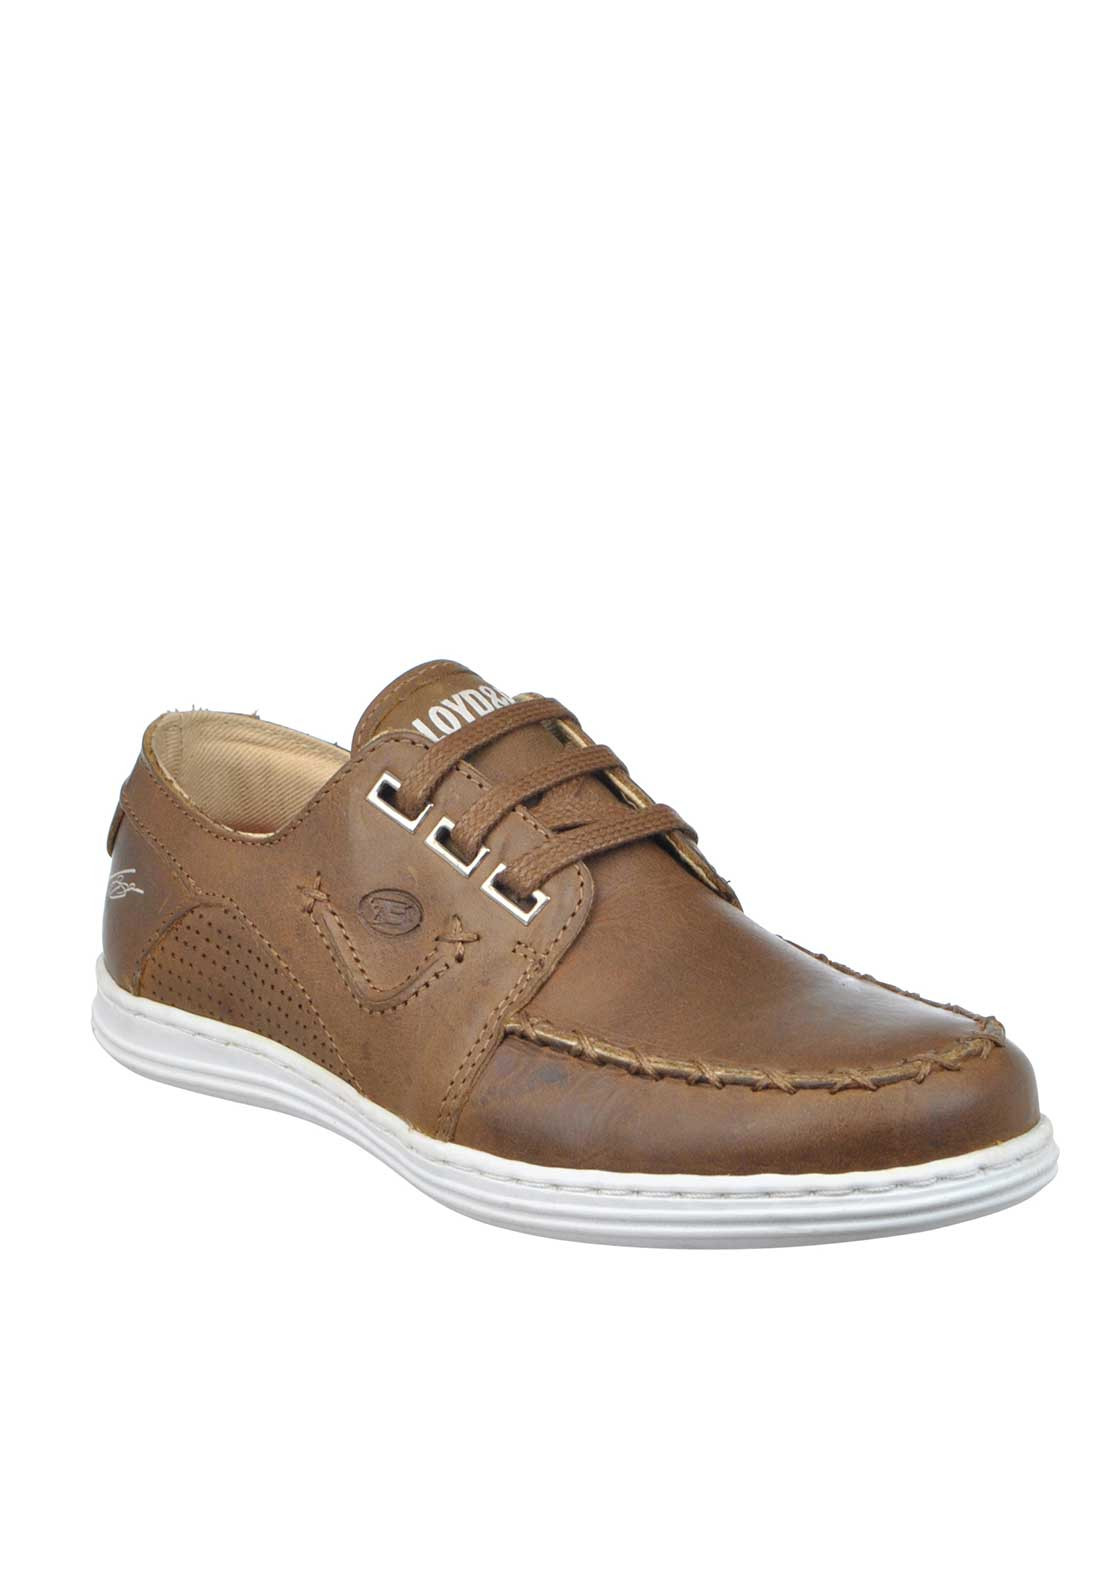 Lloyd & Pryce Tommy Bowe Boys Cullen Leather Laced Shoes, Brown